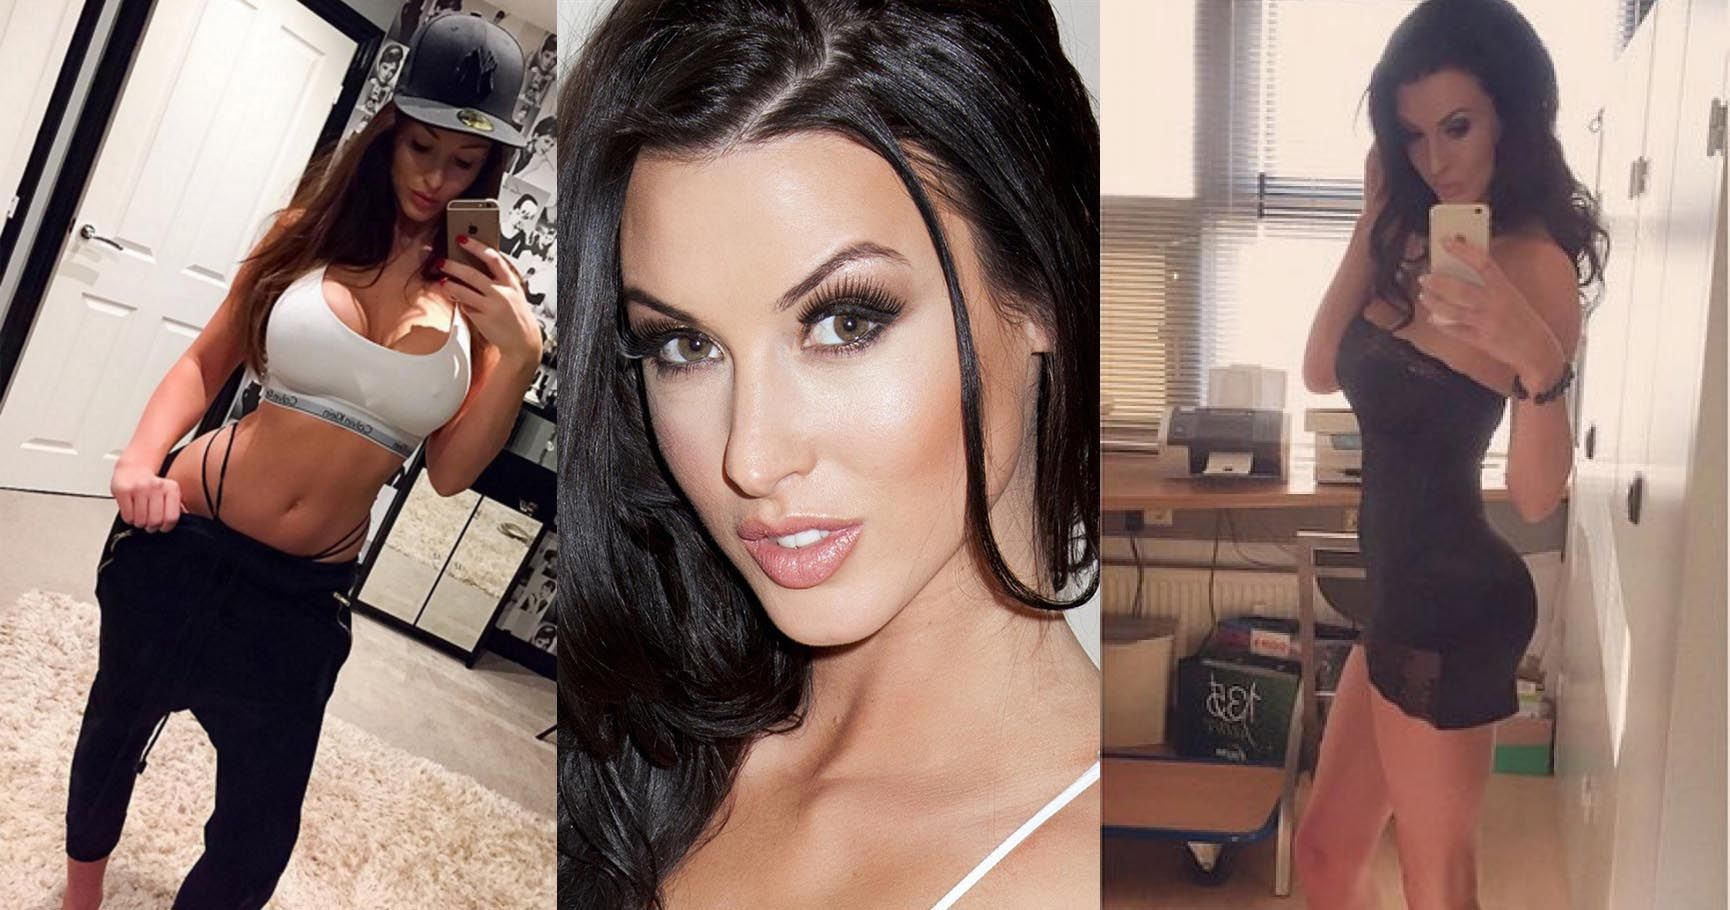 Top 15 Sexiest Soccer WAGs in the World